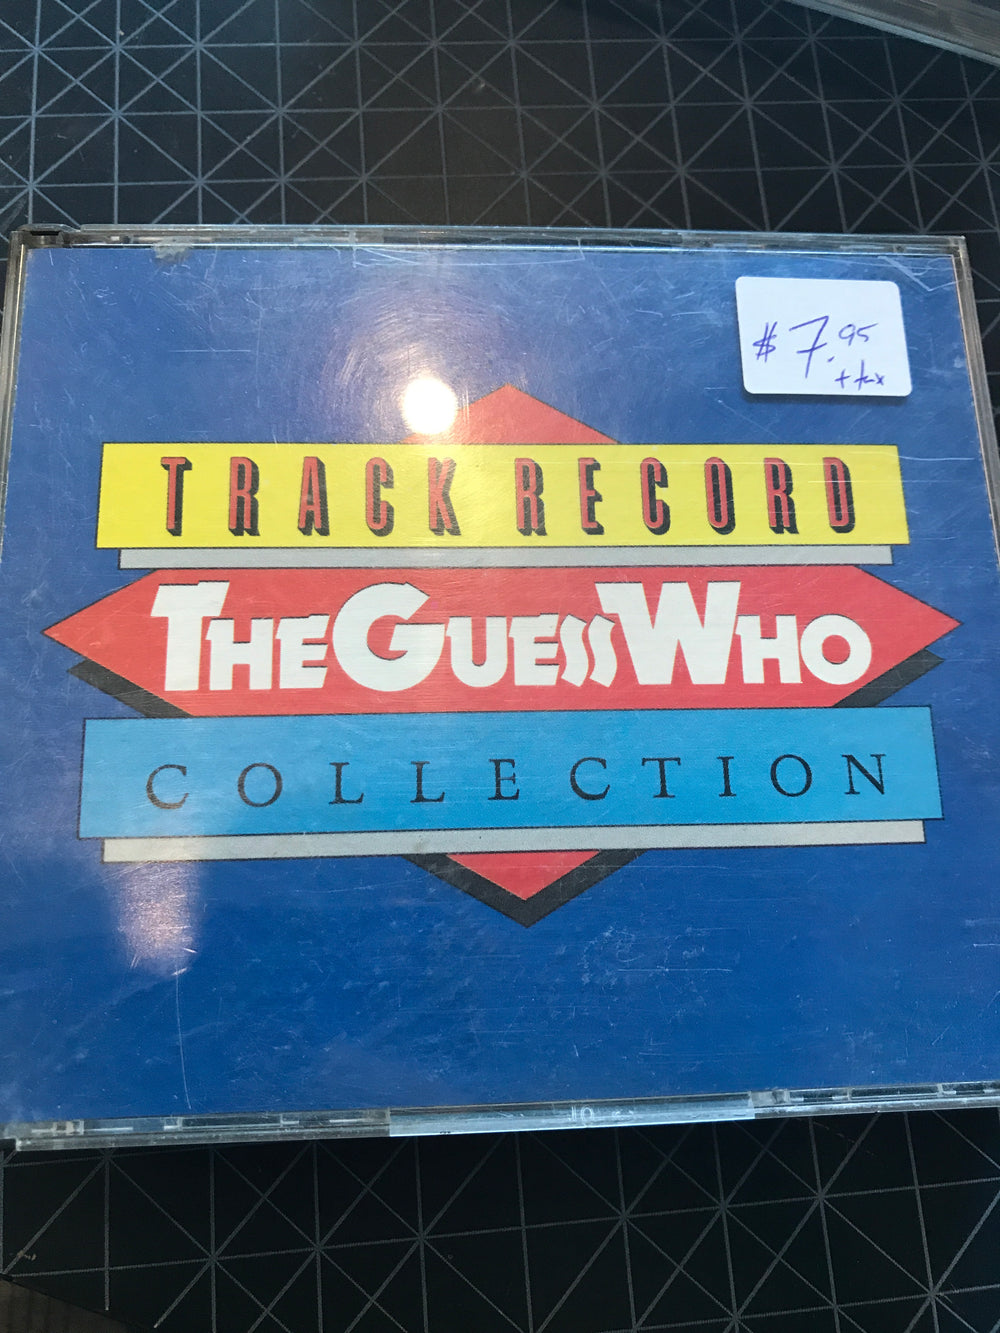 Guess Who, The - Track Record Collection (worn jewel case) - Used CD